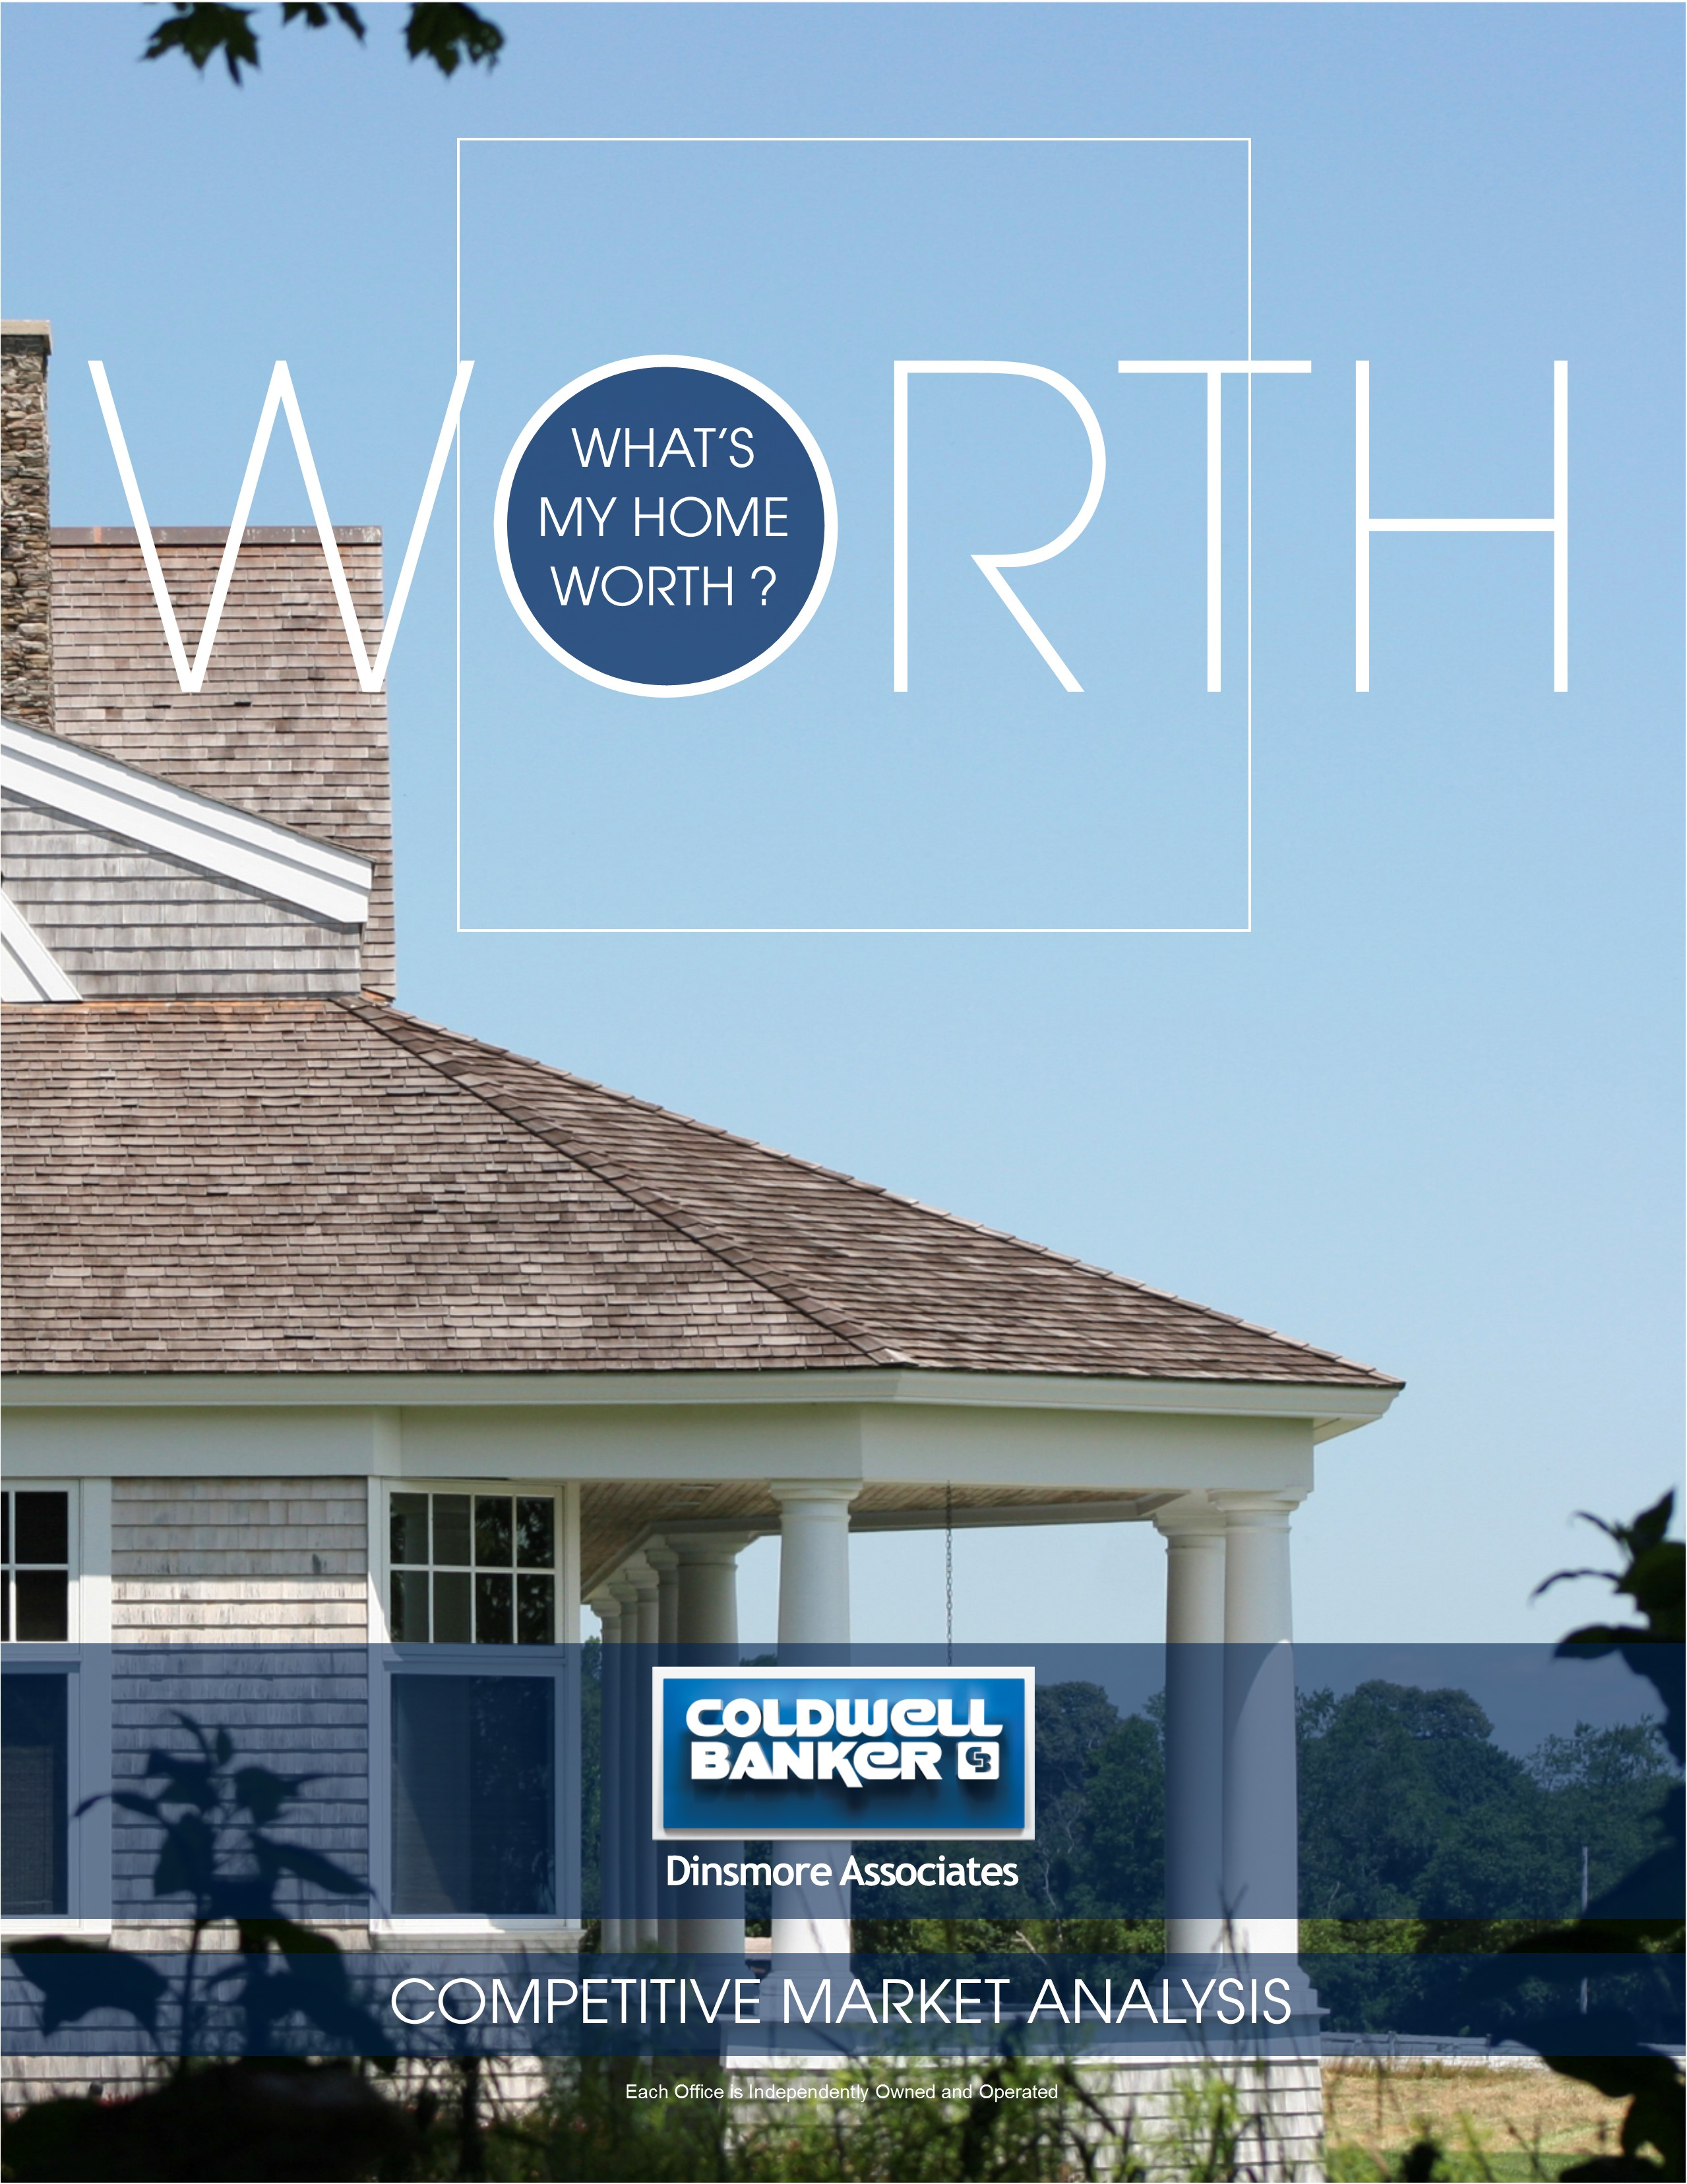 Free Market Analysis on Your Home - Coldwell Banker Dinsmore